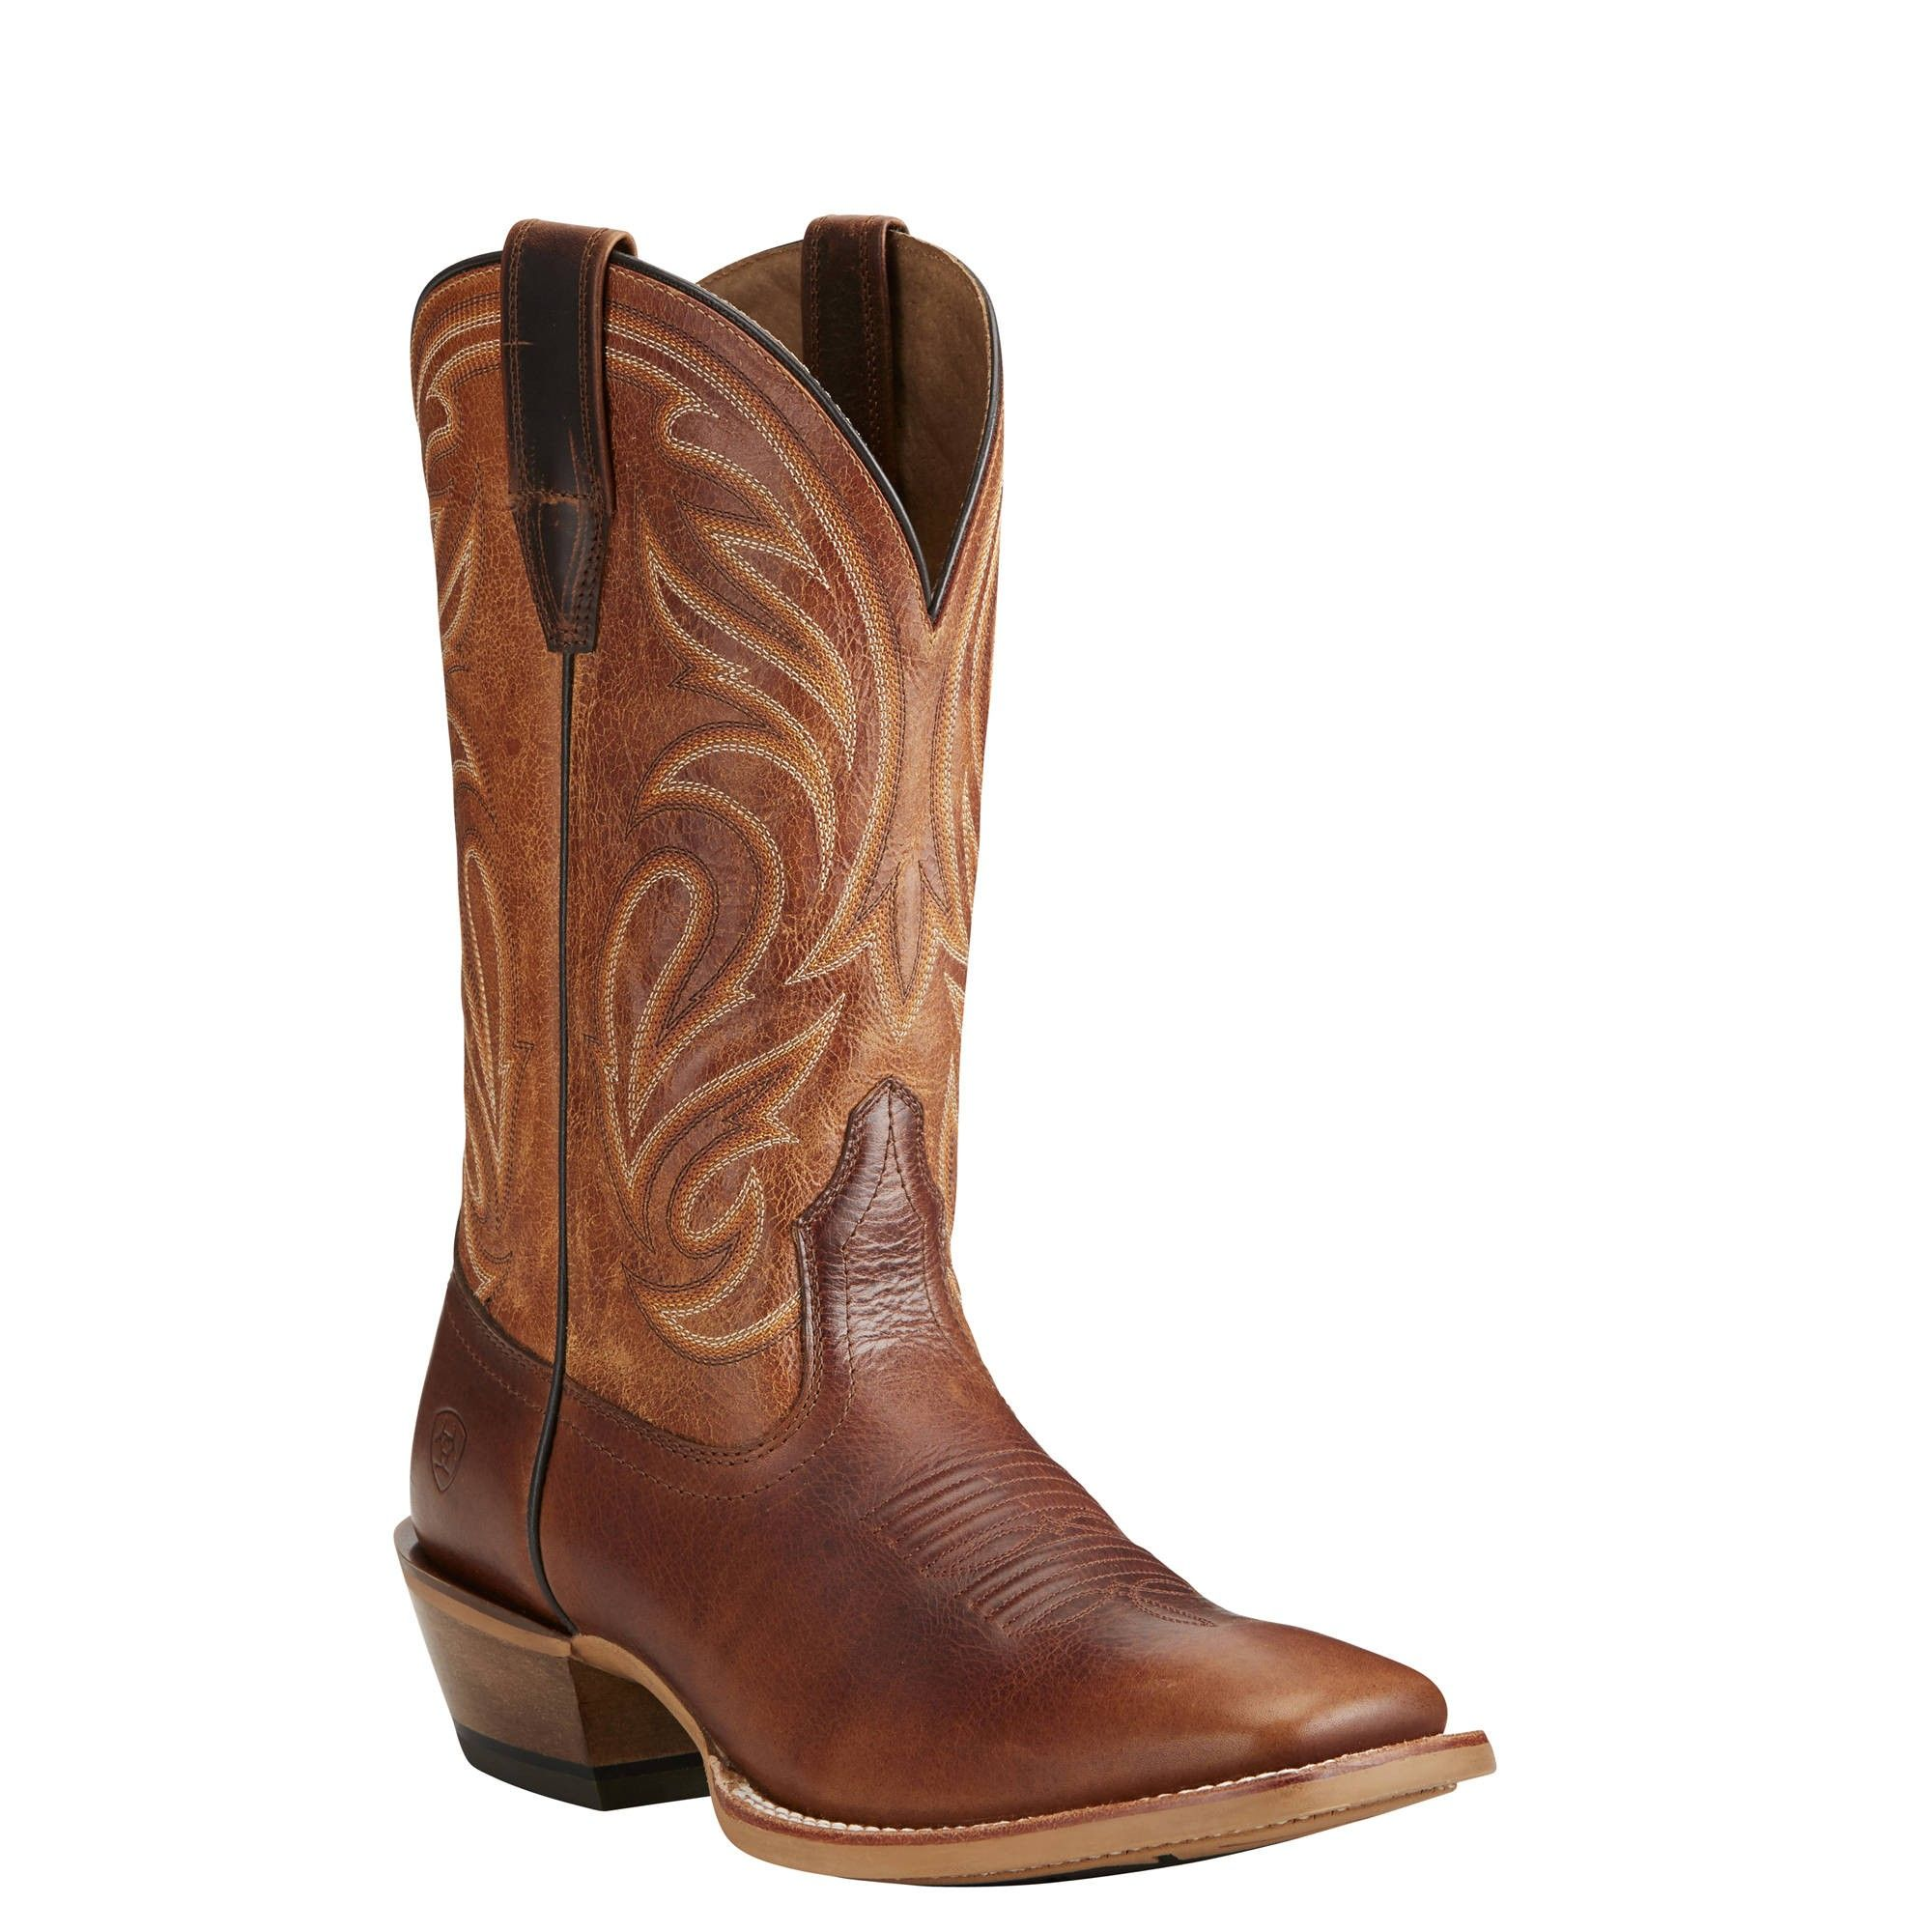 Men's Ariat Crossfire, Size: 9.5 D, Weathered Brown/Shadow Black Full Grain leather